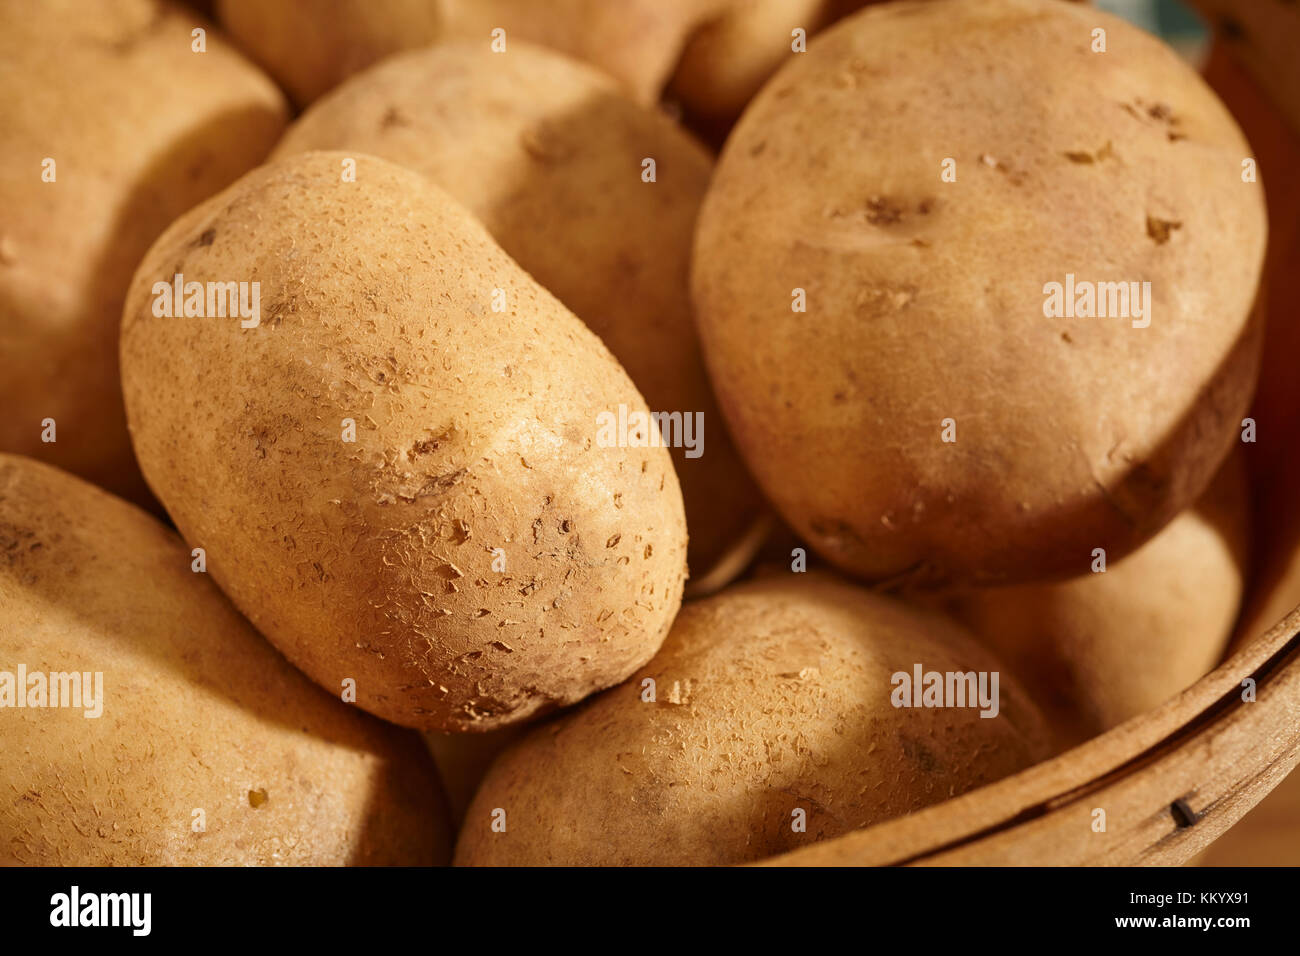 whole, fresh, raw white potatoes from Lancaster County, Pennsylvania, USA - Stock Image